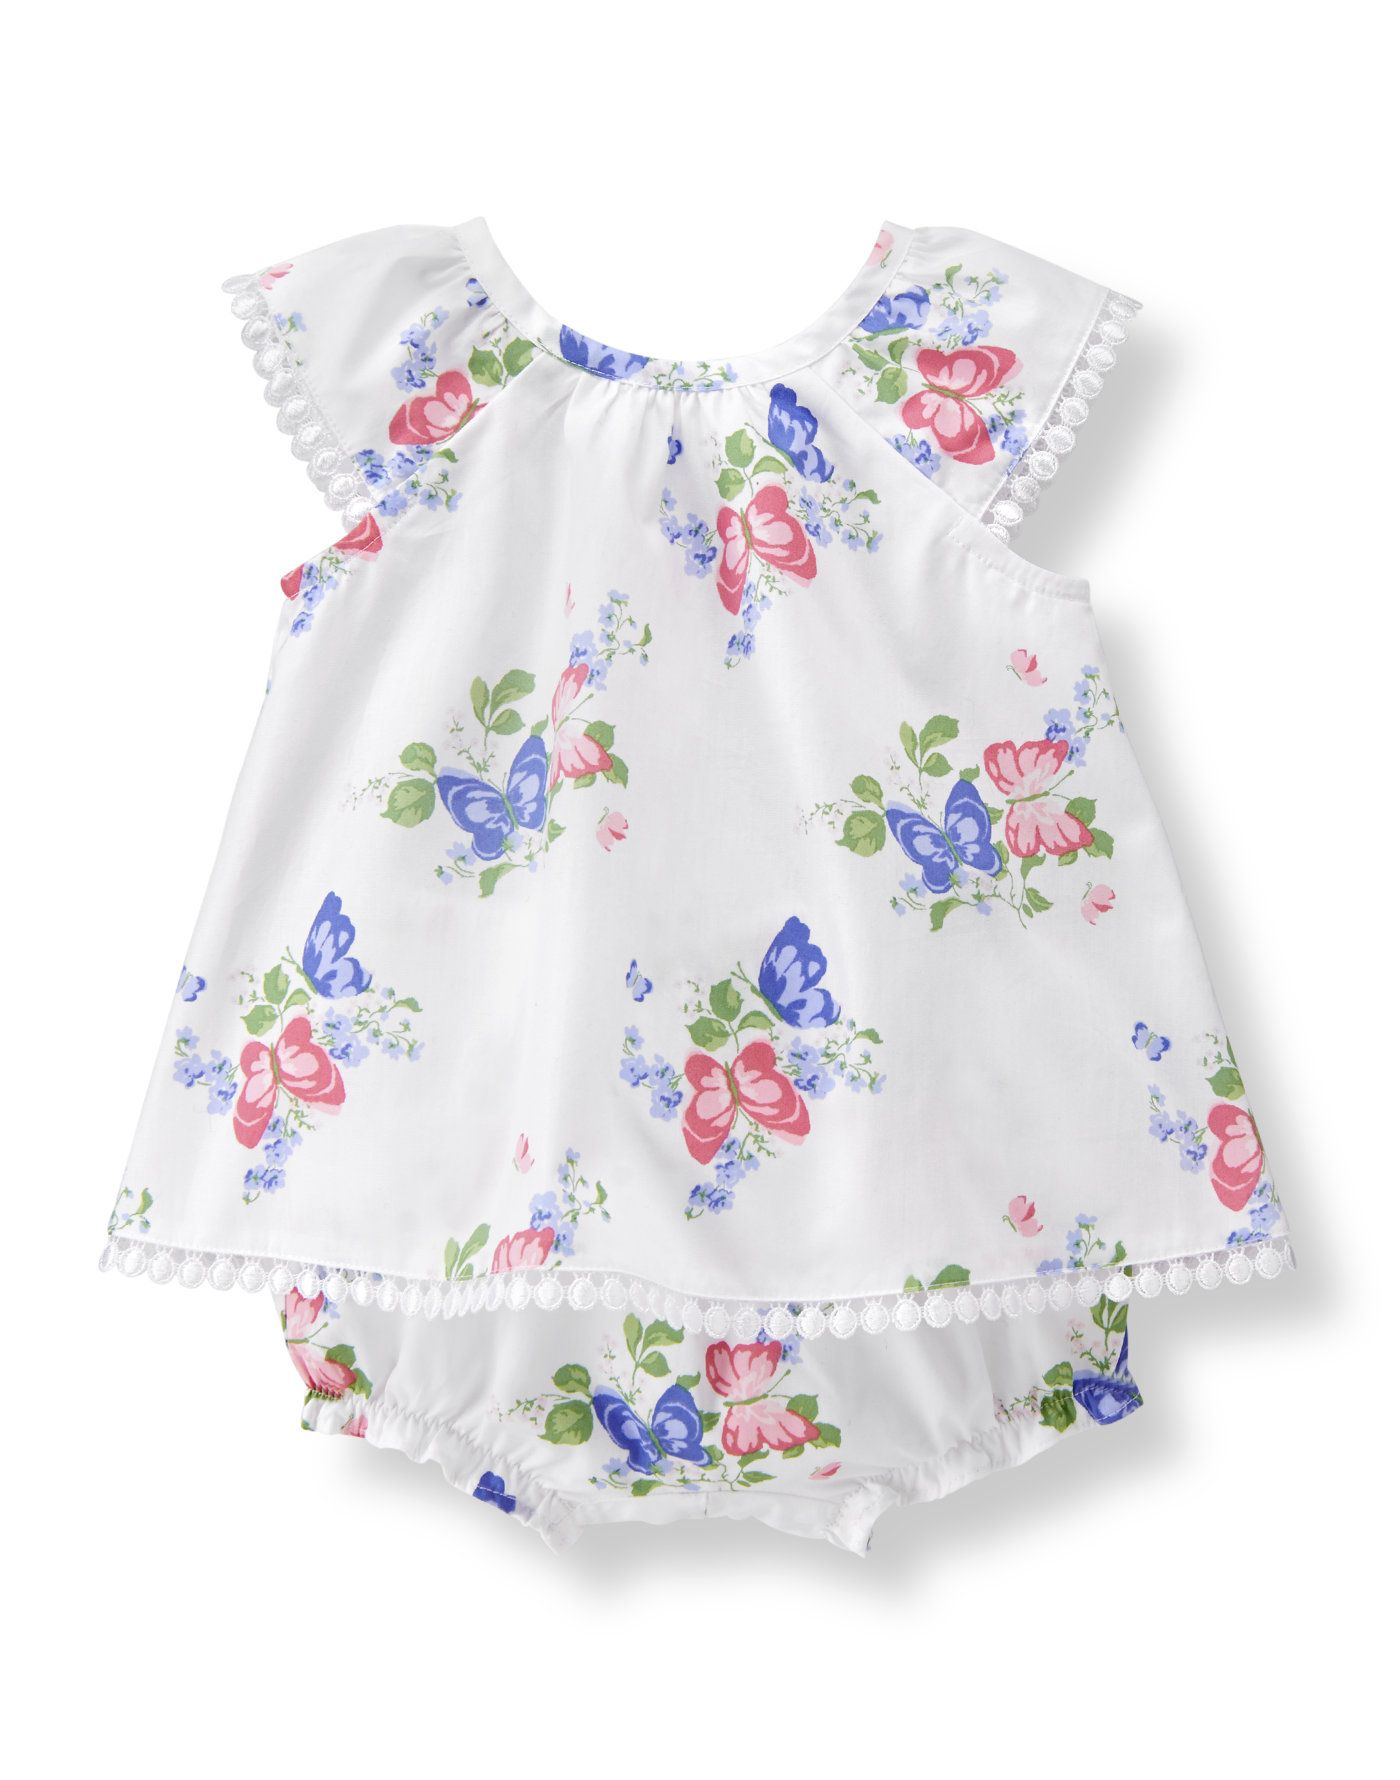 Butterfly Swing Top Set | Bebé | Pinterest | Costura para bebês ...